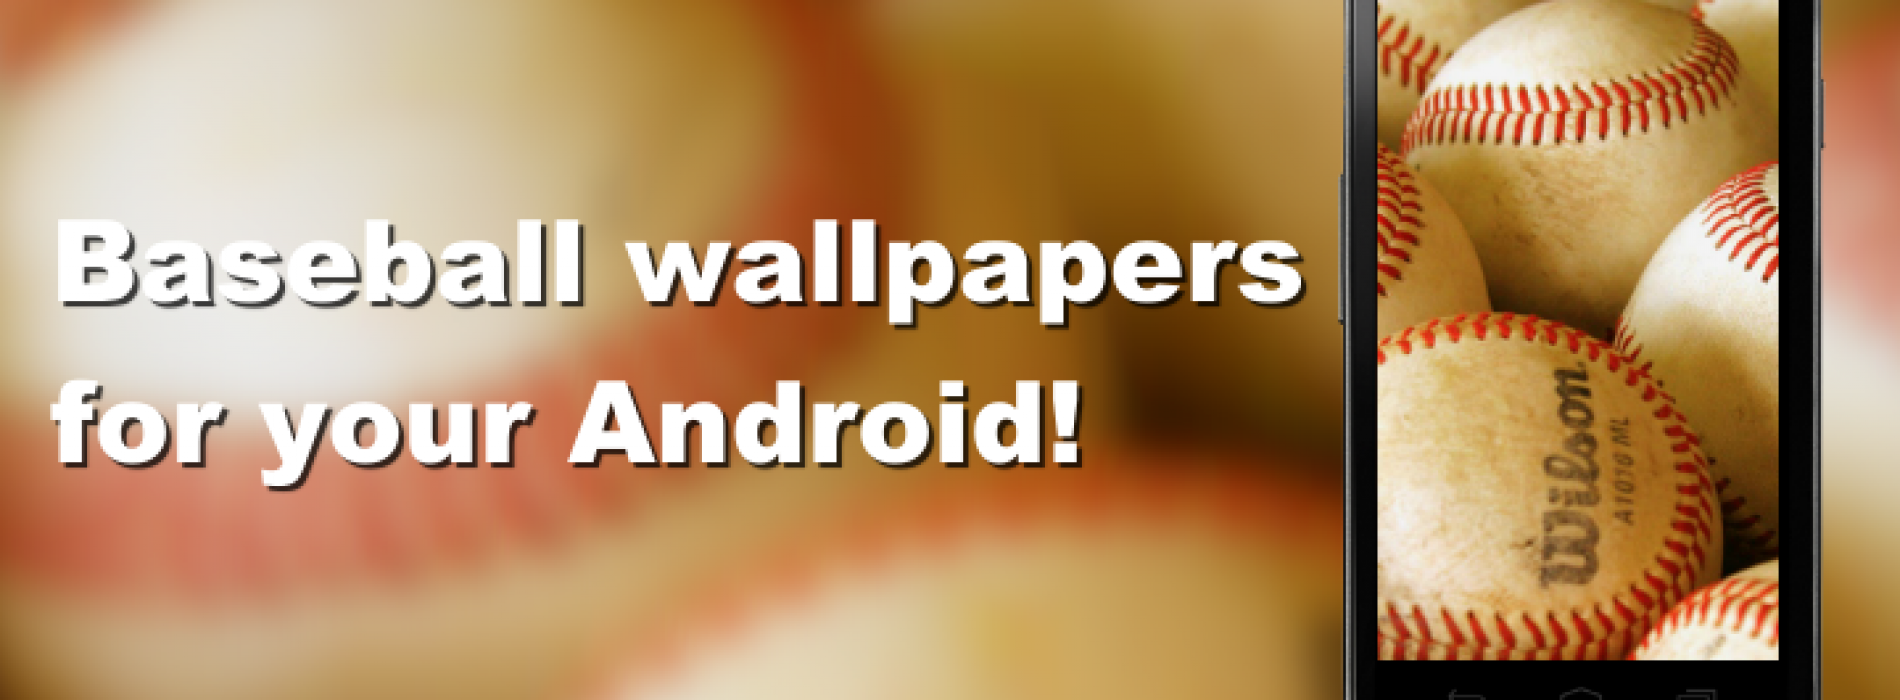 Play ball! Enjoy a gallery of baseball-themed wallpapers for your Android